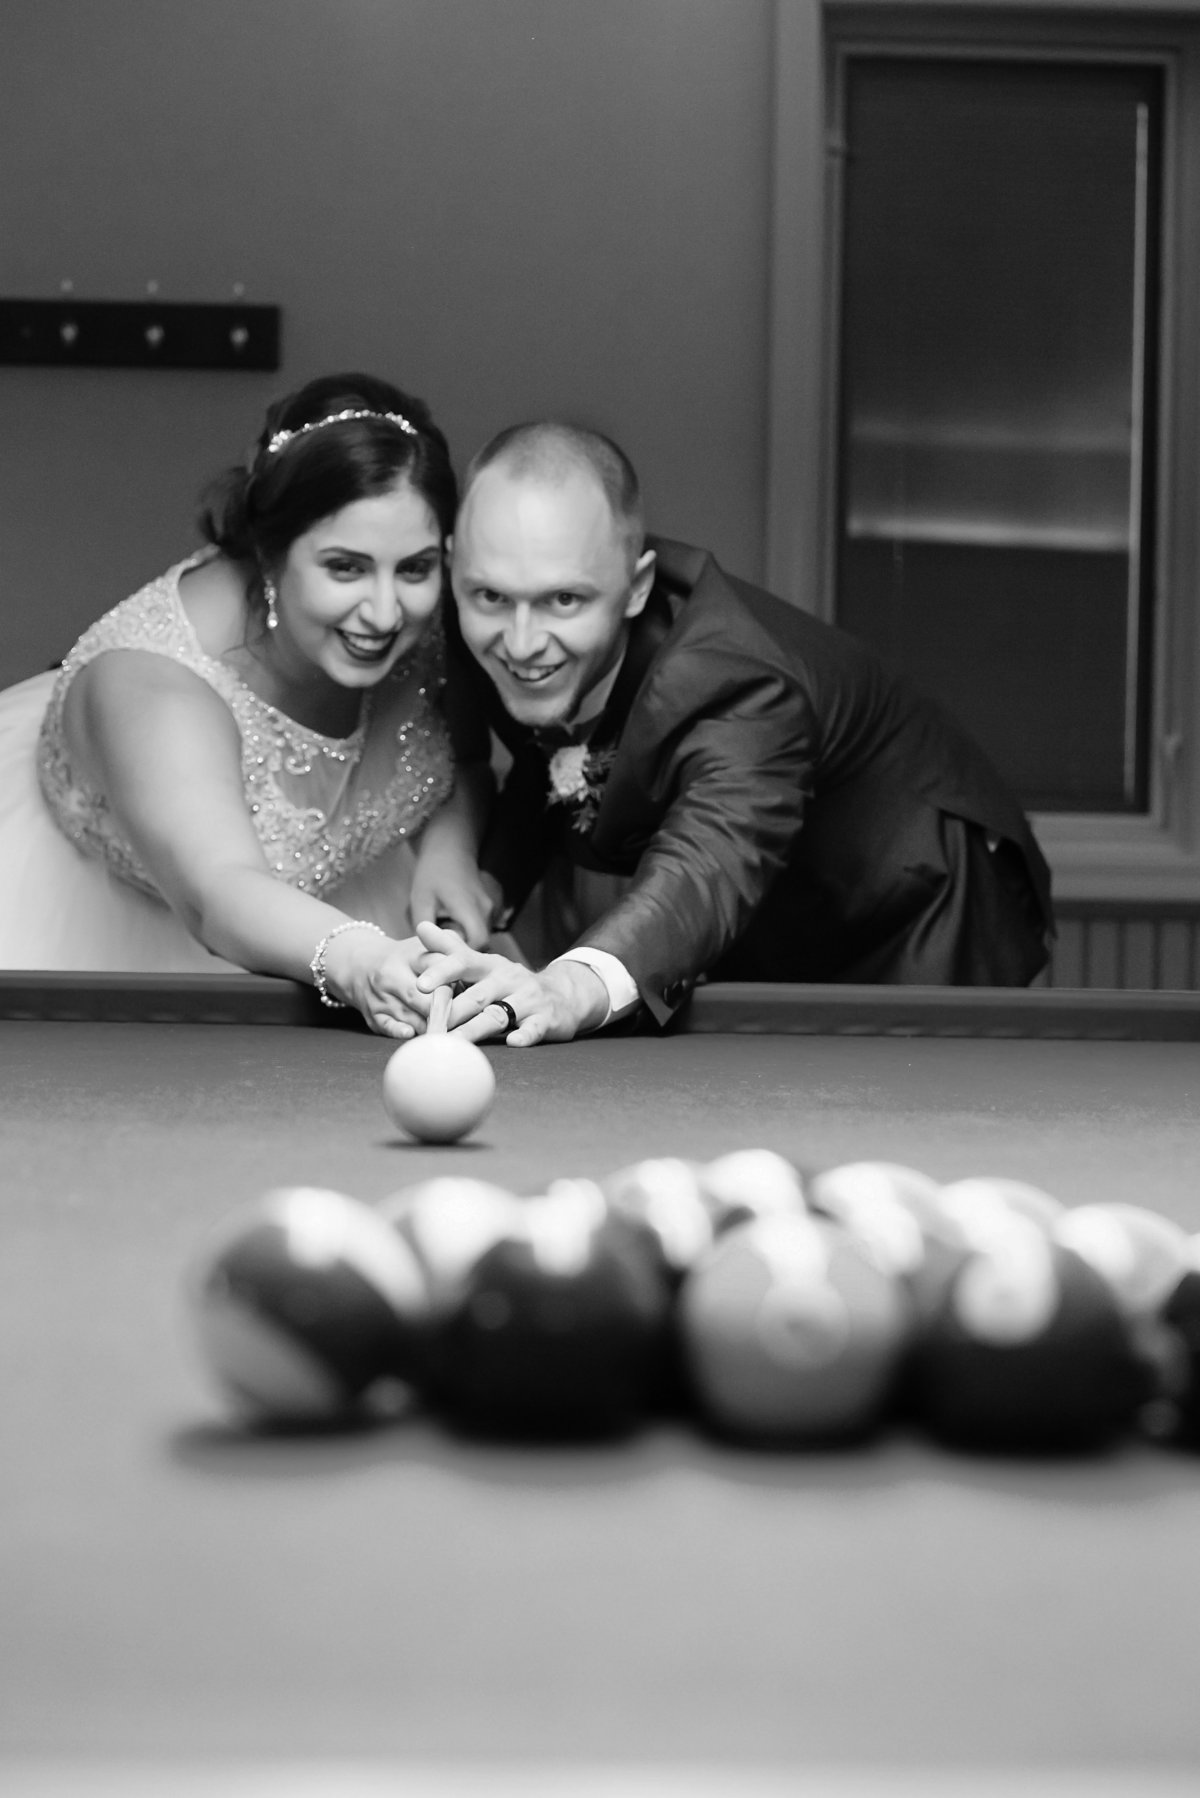 bride and groom playing pool